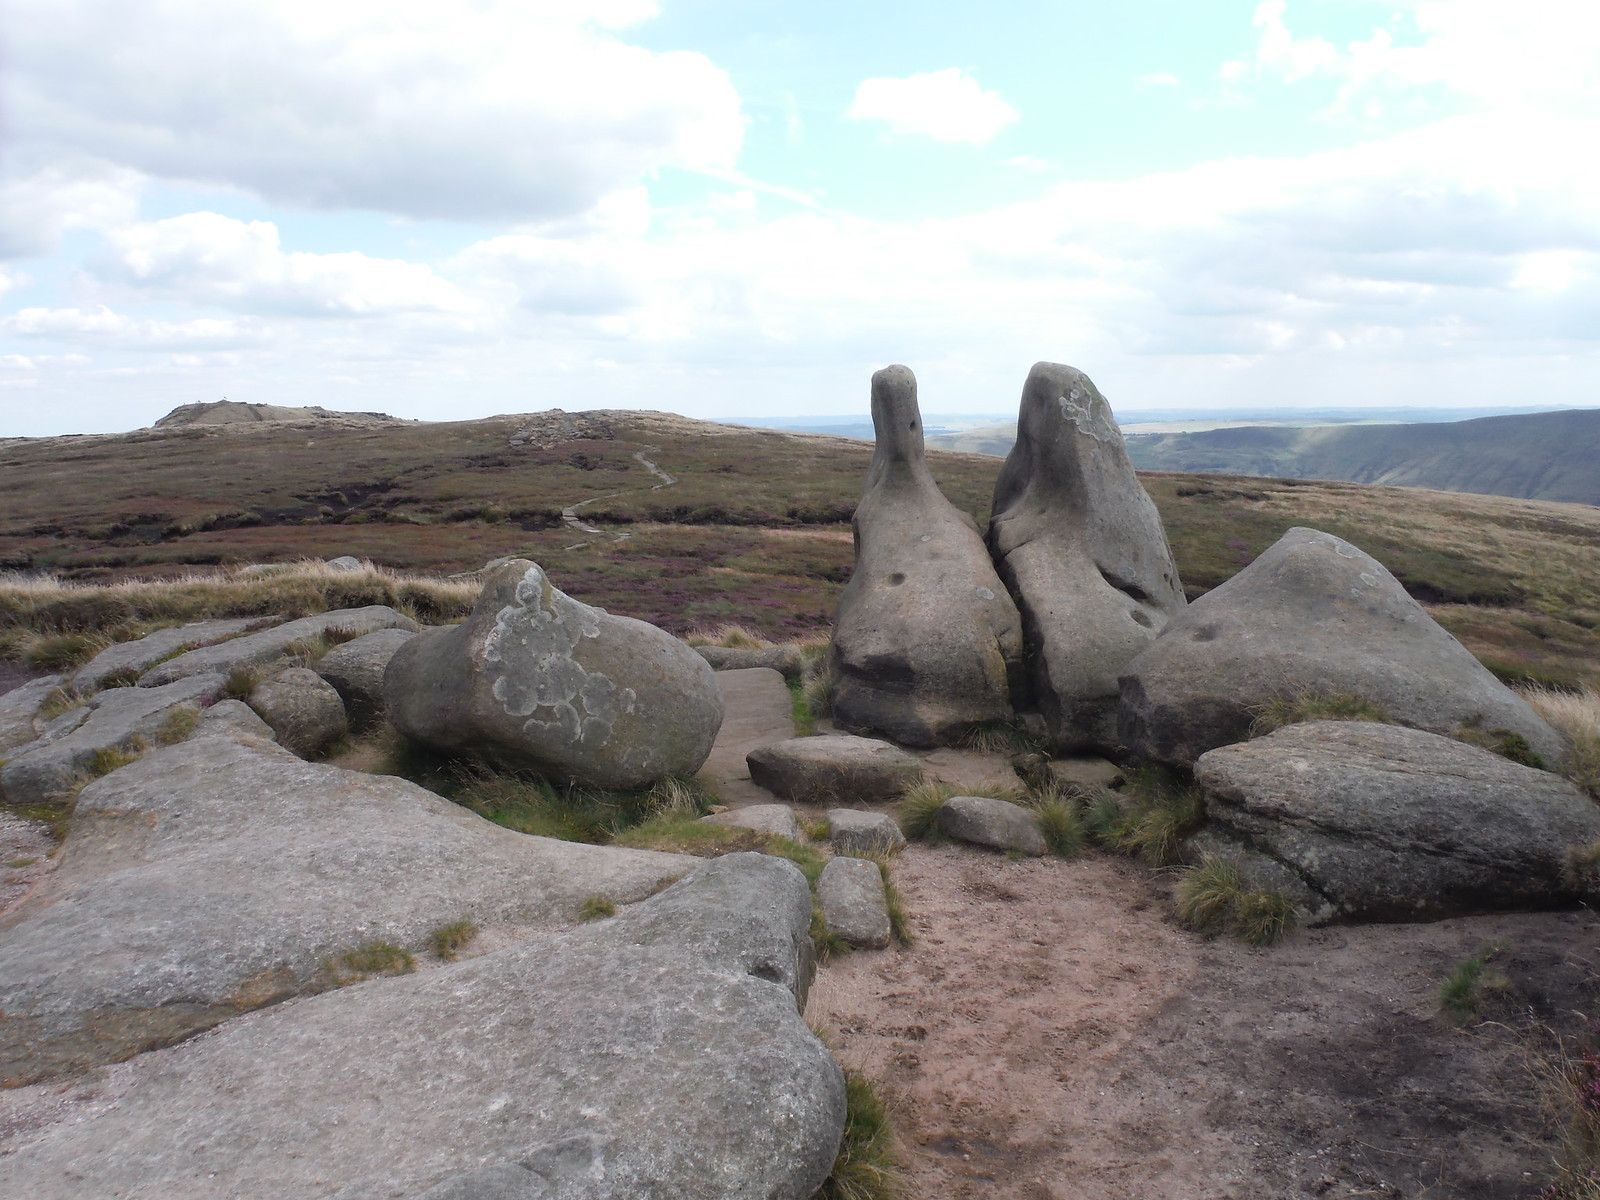 Henry Moore Sculpture Lookalikes on Kinder Scout Plateau SWC Walk 303 - Edale Circular (via Kinder Scout and Mam Tor)